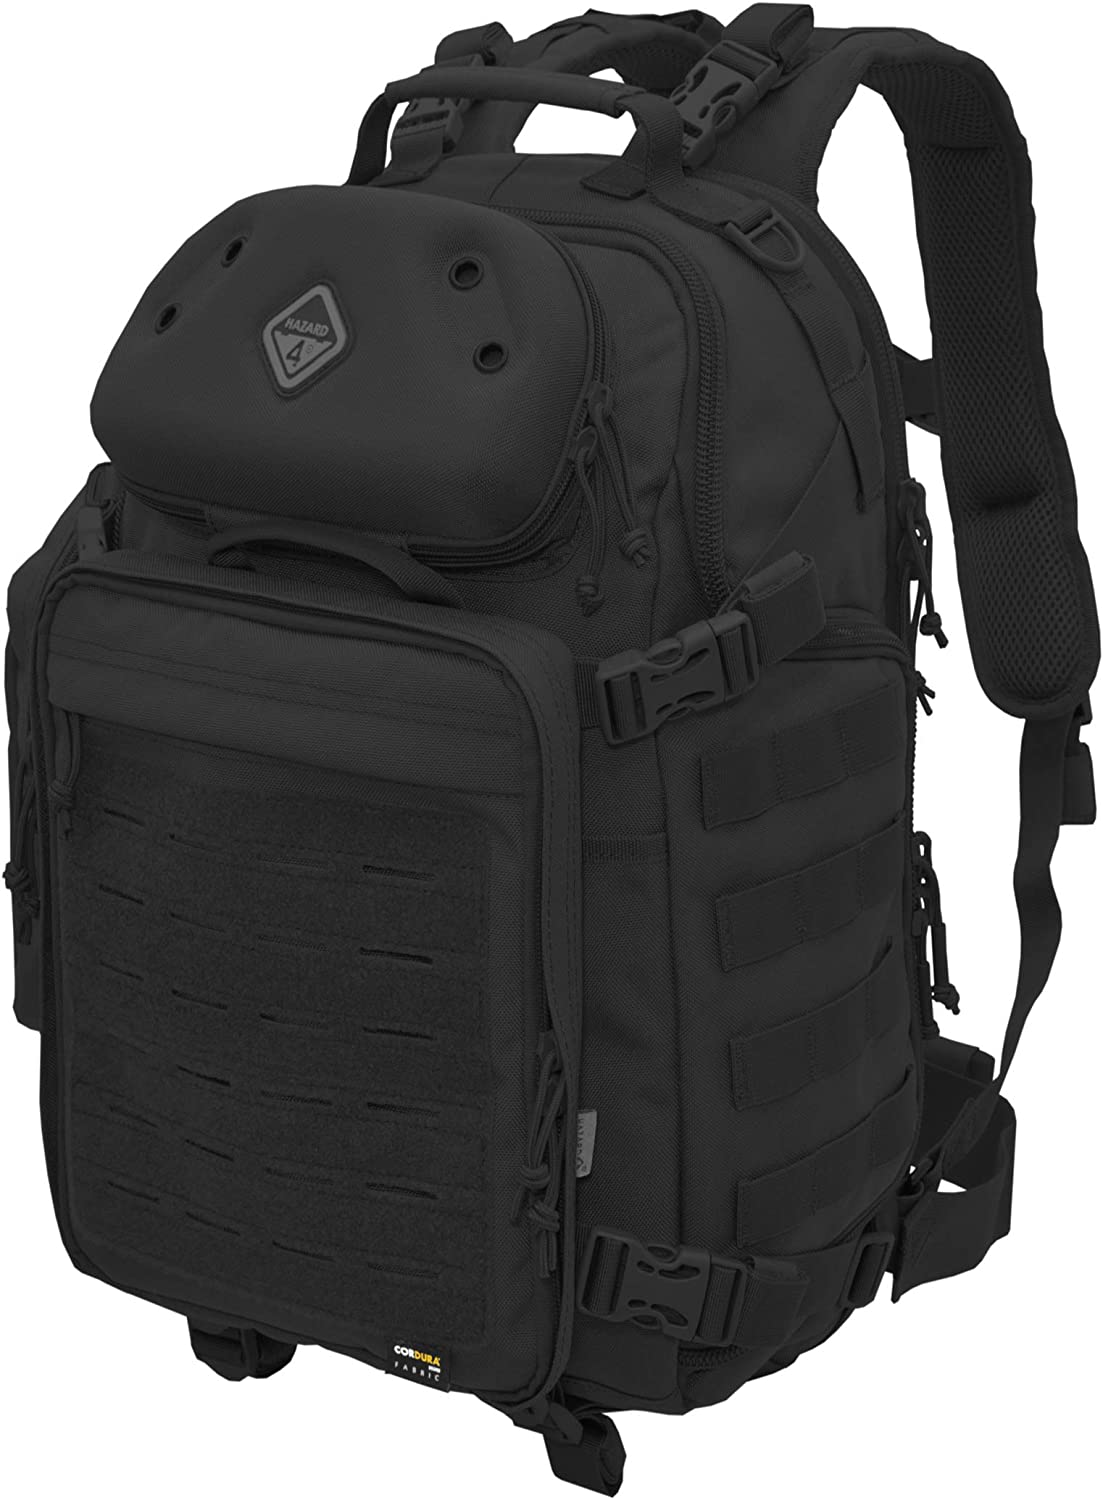 HAZARD 4 Drawbridge: Gear-Retention Modular Daypack